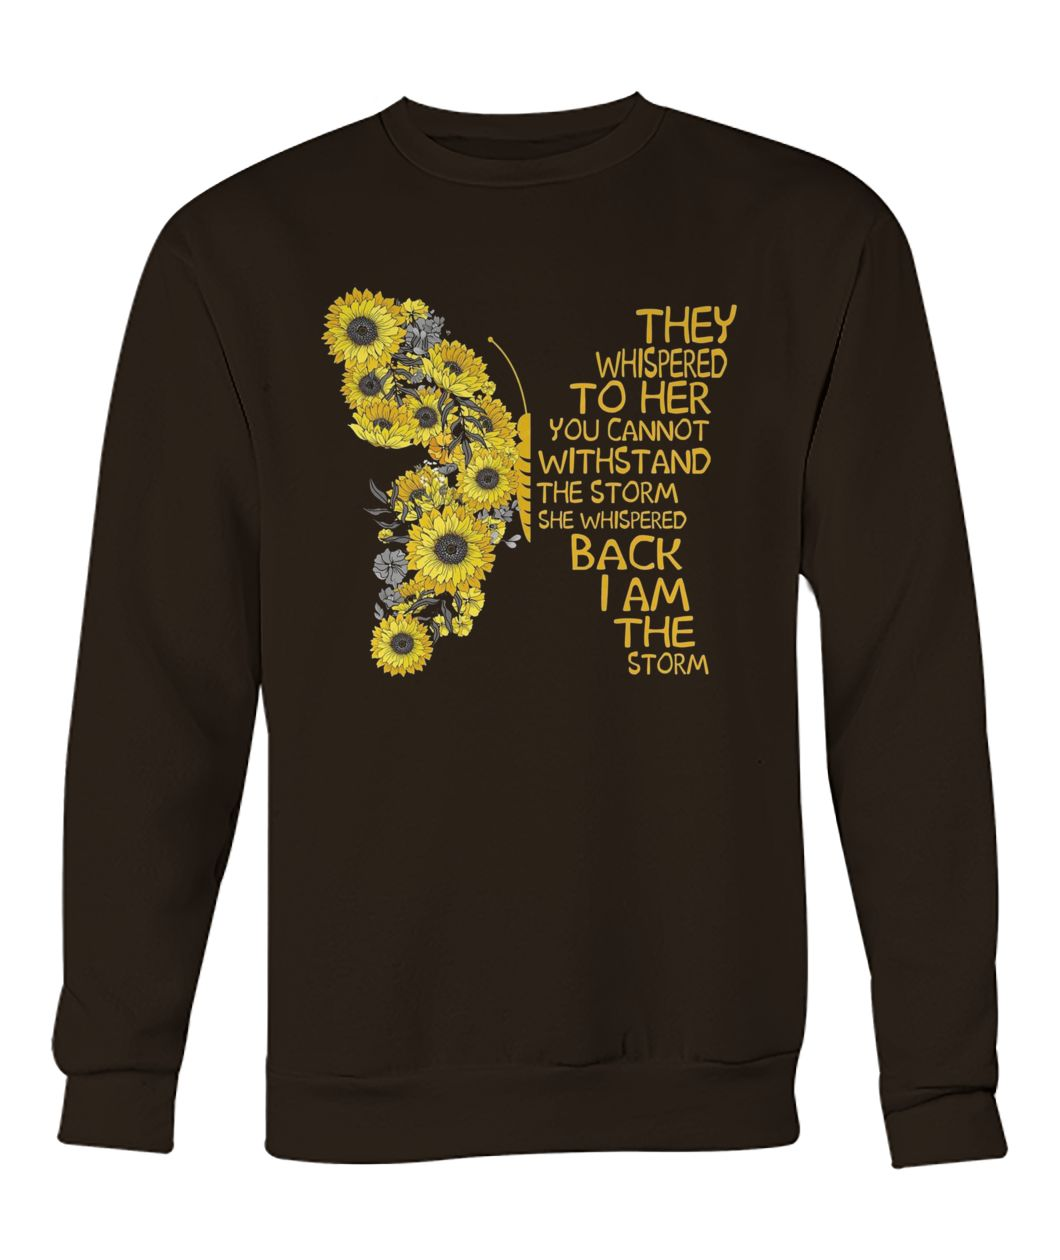 Butterfly they whispered to her you cannot withstand the storm she whispered back I am the storm crew neck sweatshirt